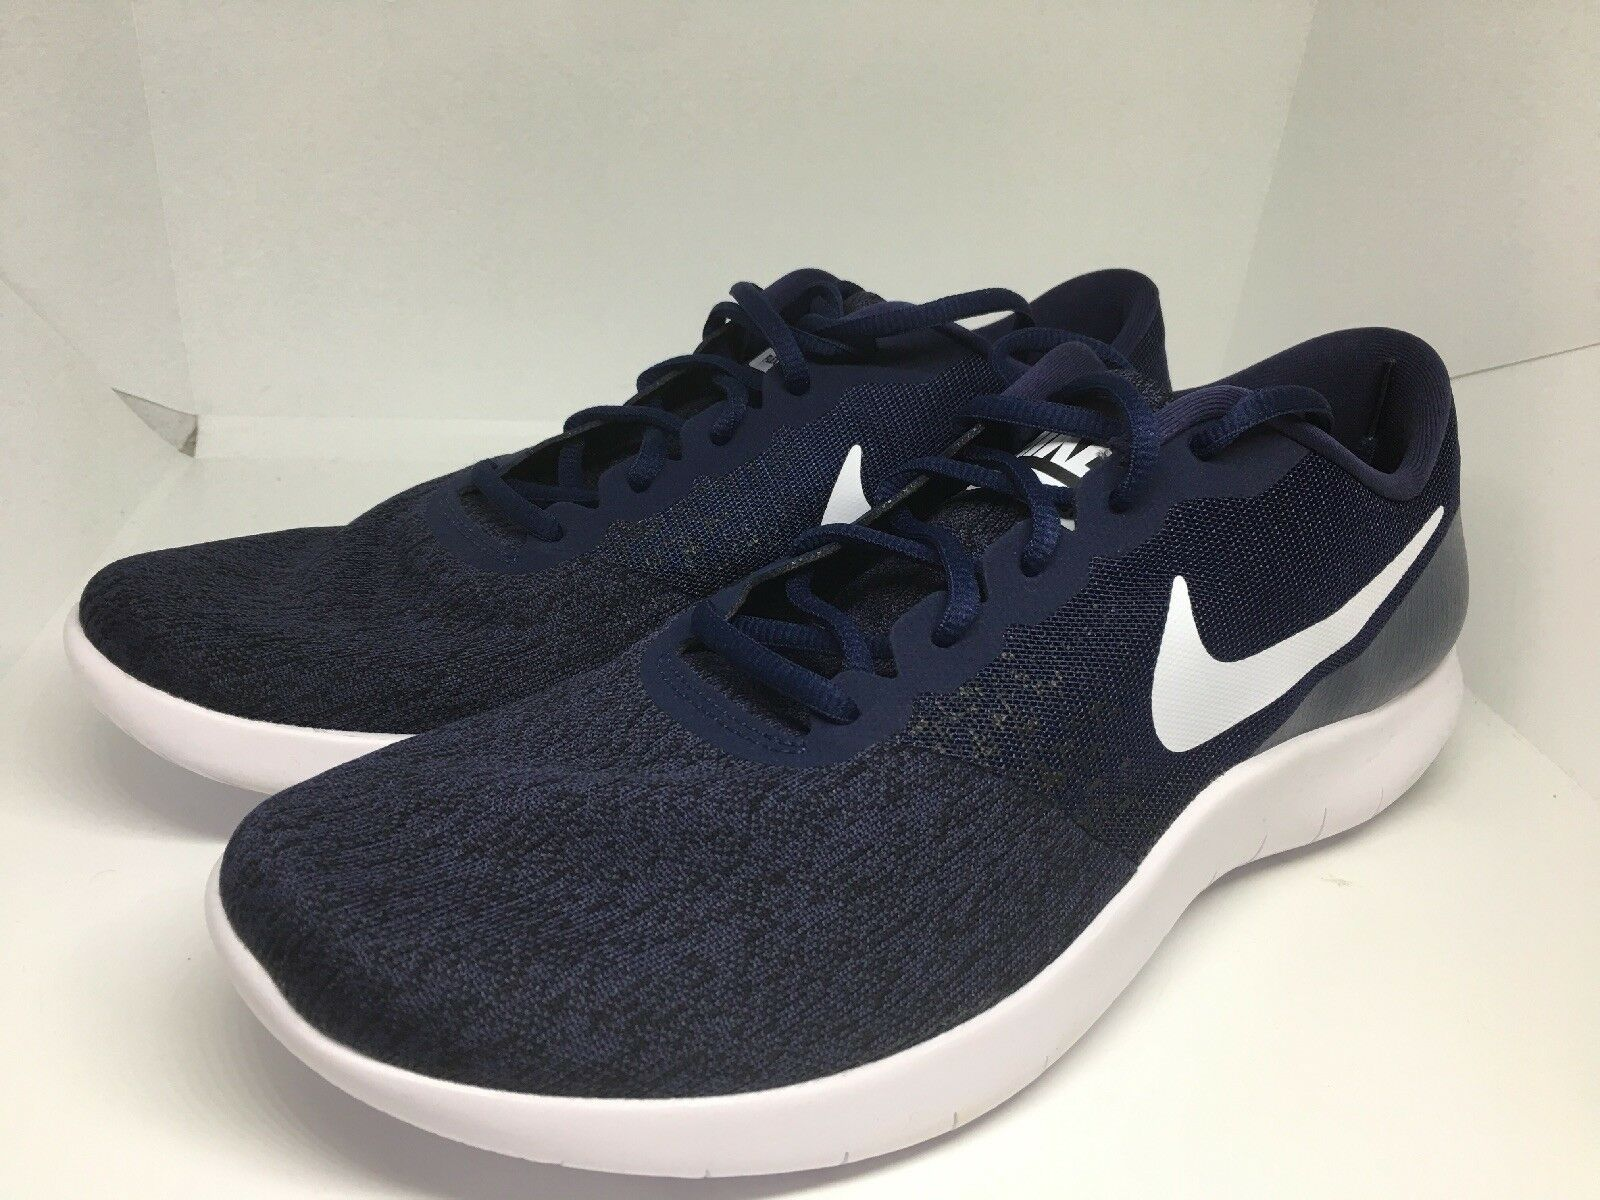 Nike Flex Contact Running Men's Men's Men's shoes Size 13 Navy bluee White 908983 403 f92aa1